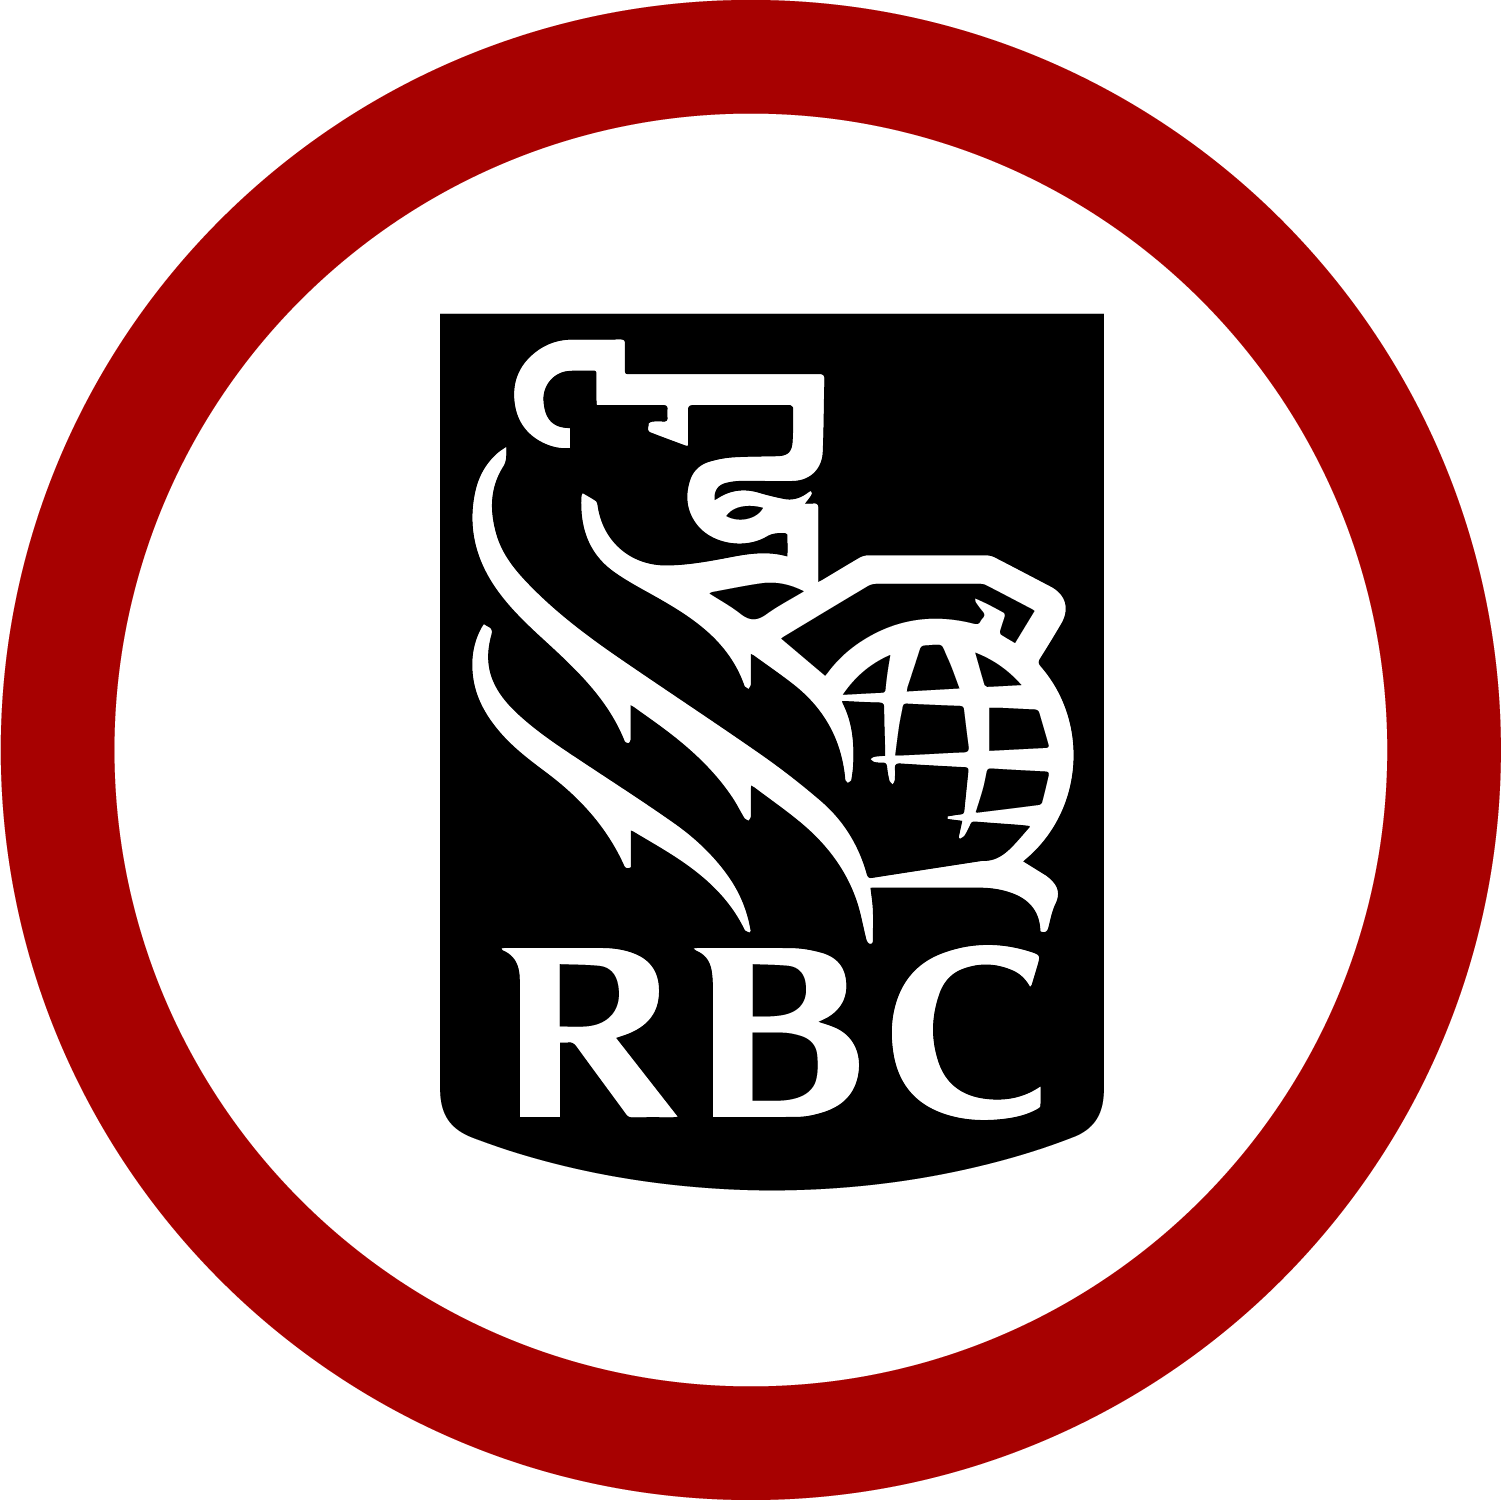 RbcLogo.png